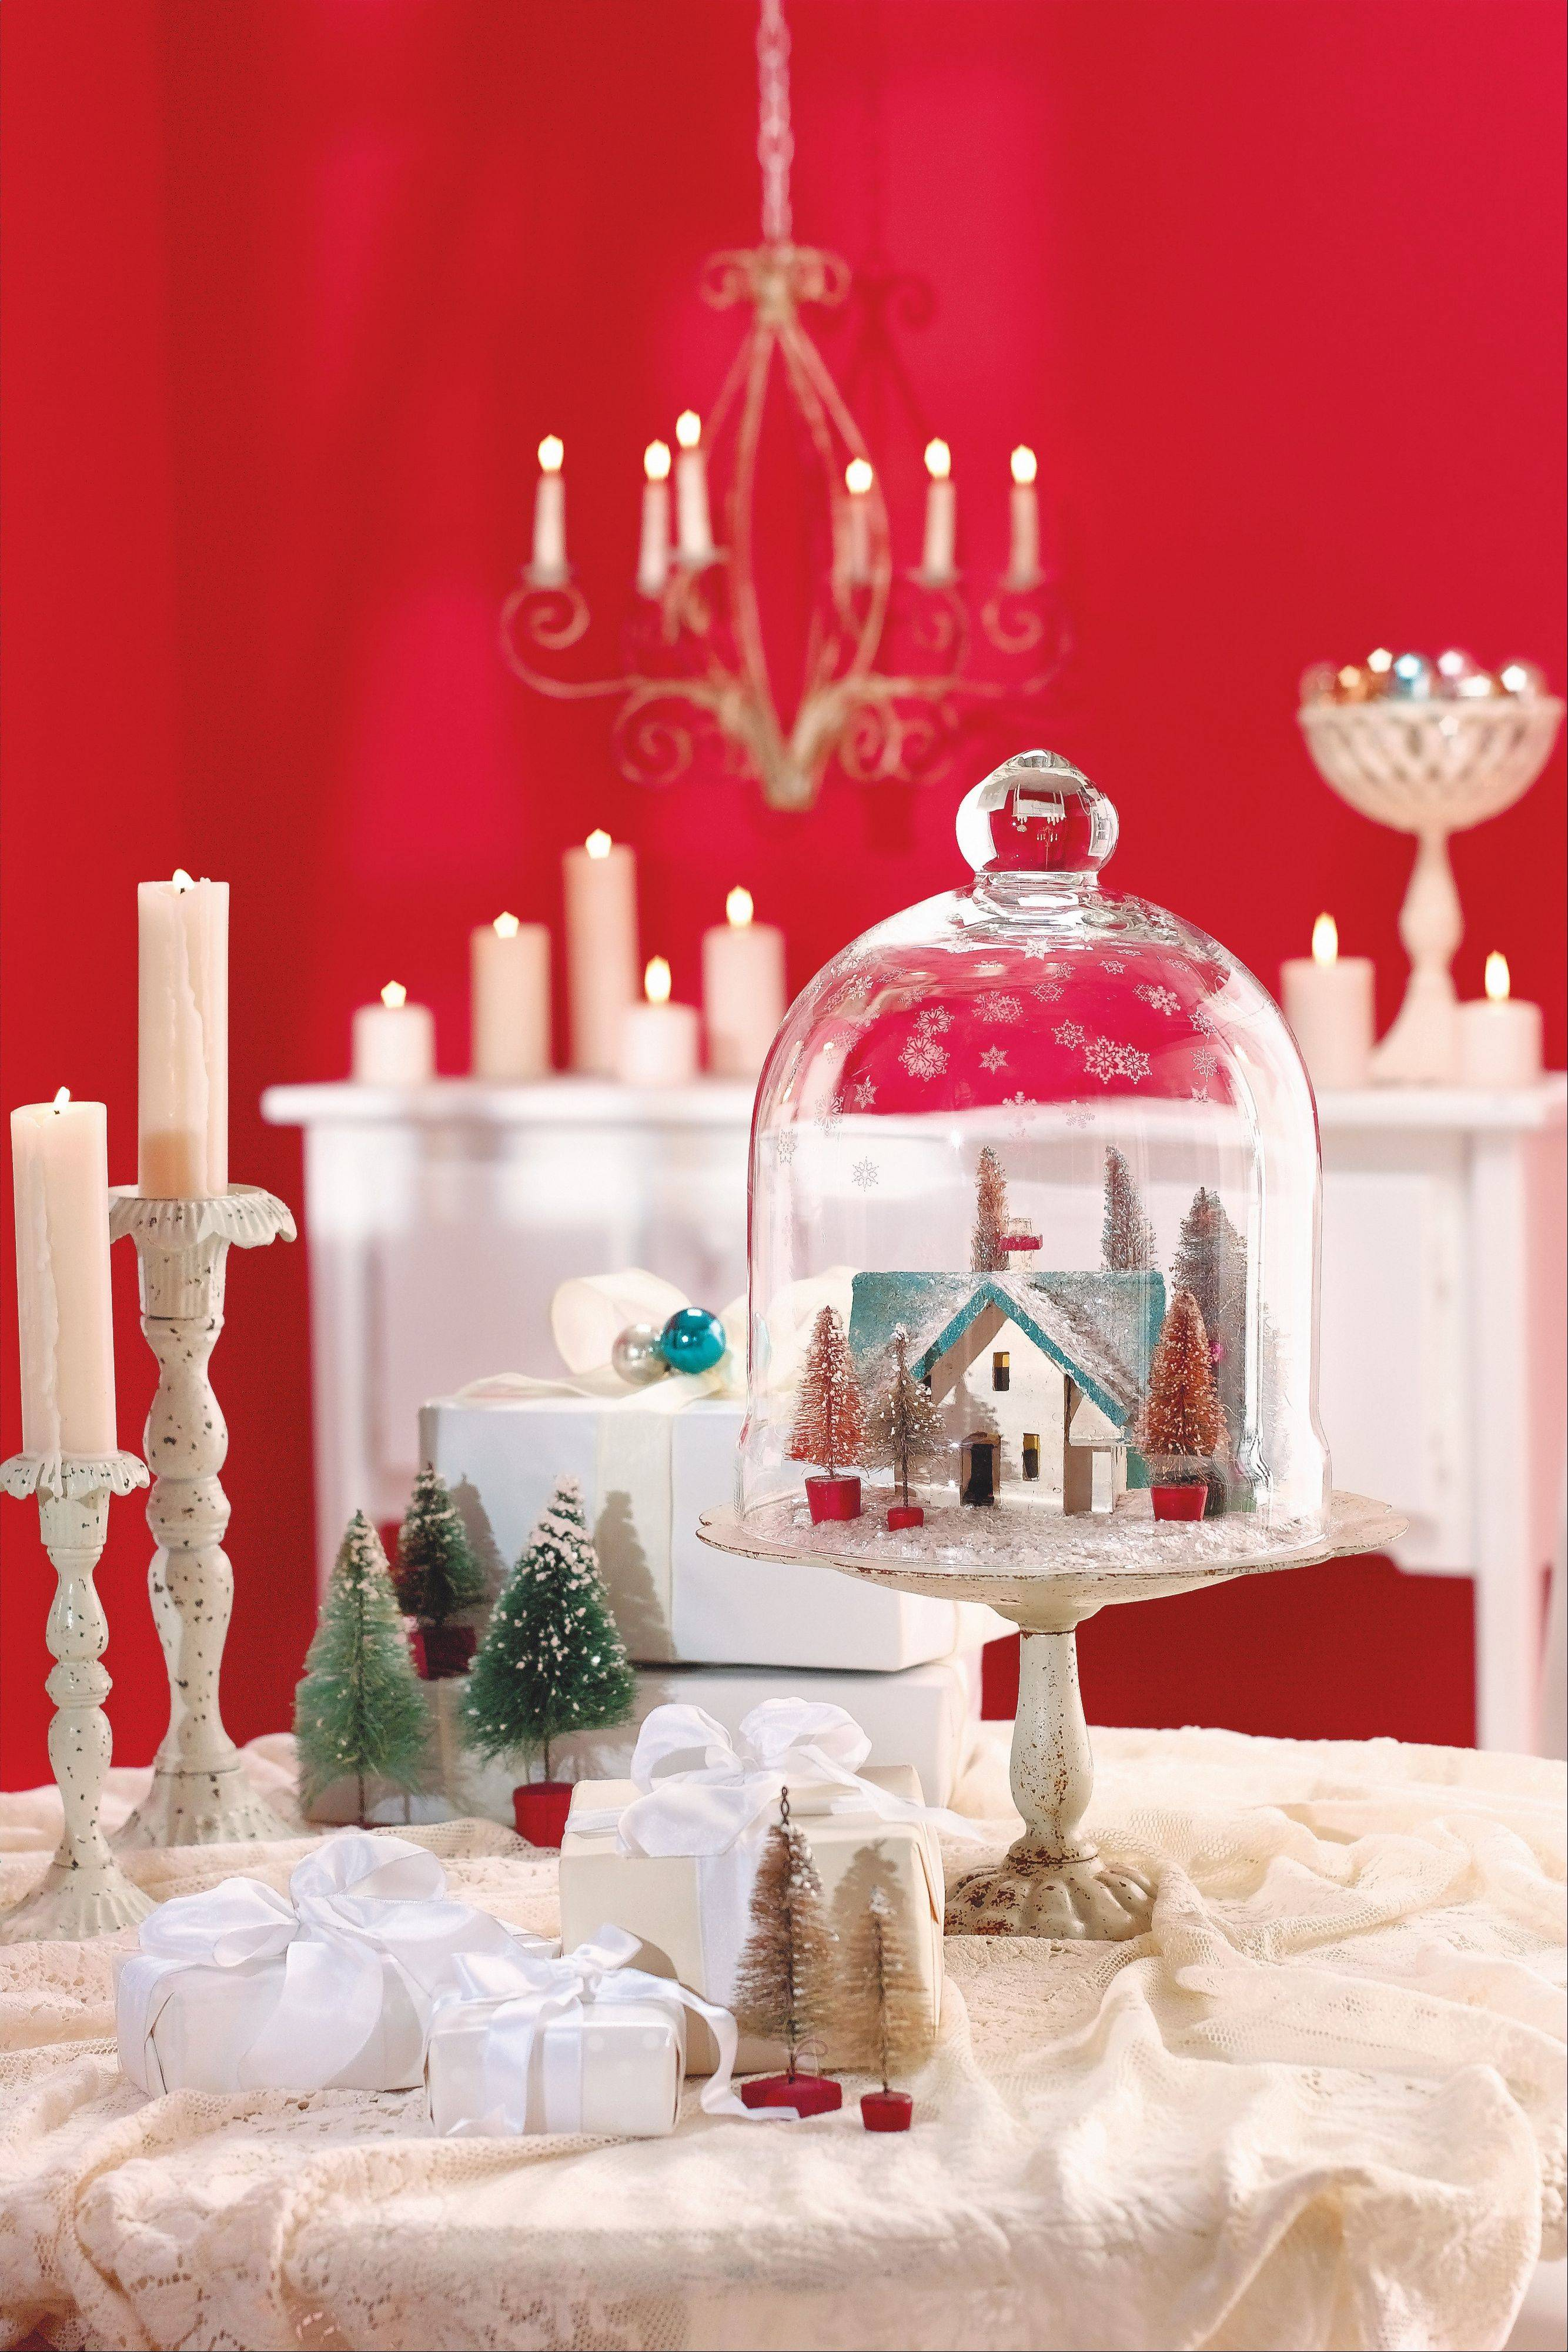 To construct a snow globe illusion that conjures up some holiday magic, use stencils and etching cream to adorn a glass cloche with snowflakes. Arrange a miniature house, bottle-brush trees and a blanket of imitation snow atop a cake plate, and cover the scene with your newly etched cloche. As an alternative to building a village, pile pinecones, greenery, berries or clove-studded oranges on the plate before adding the cloche.